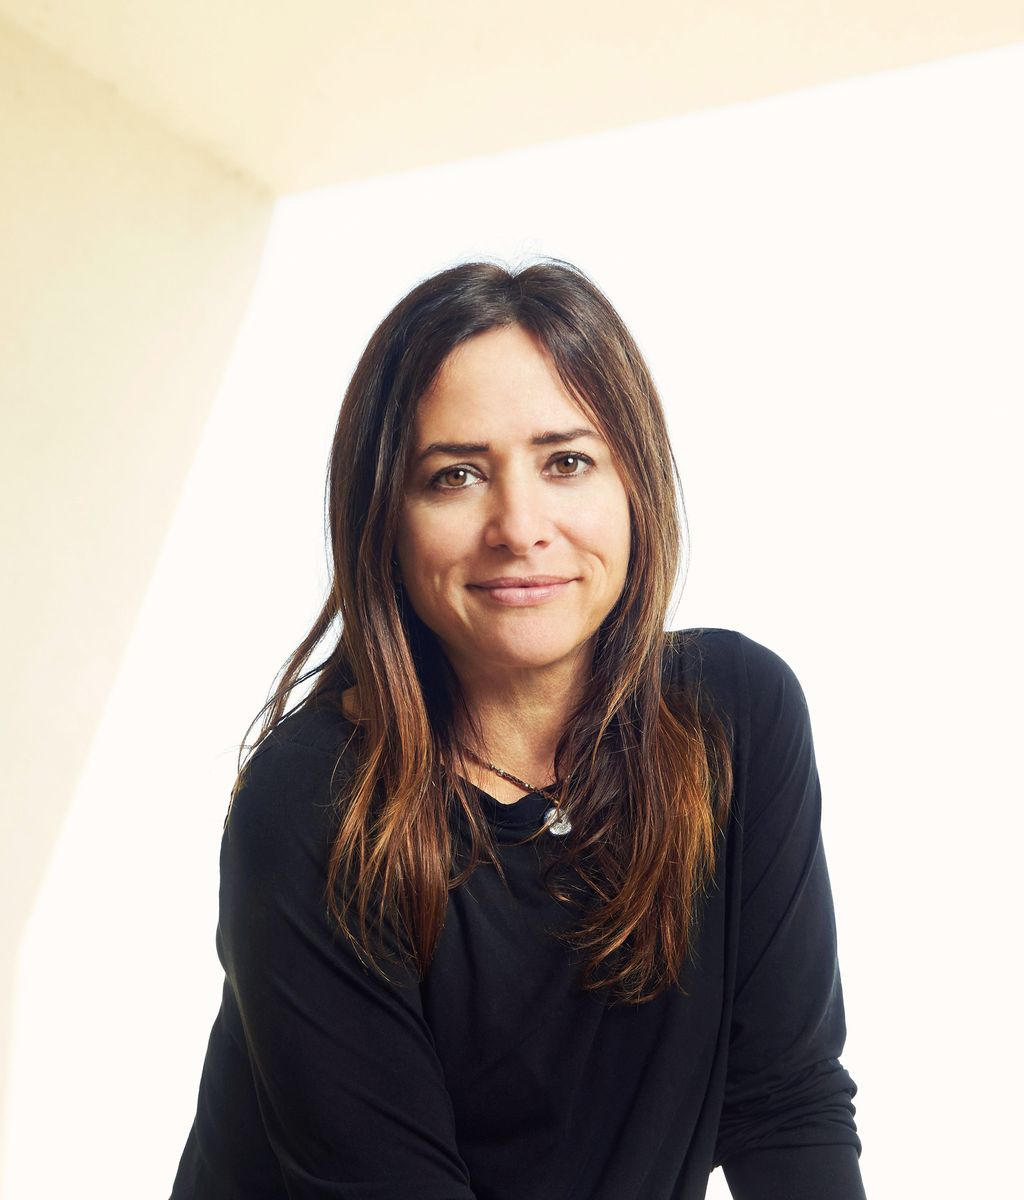 Sexy Pamela Adlon naked photo 2017